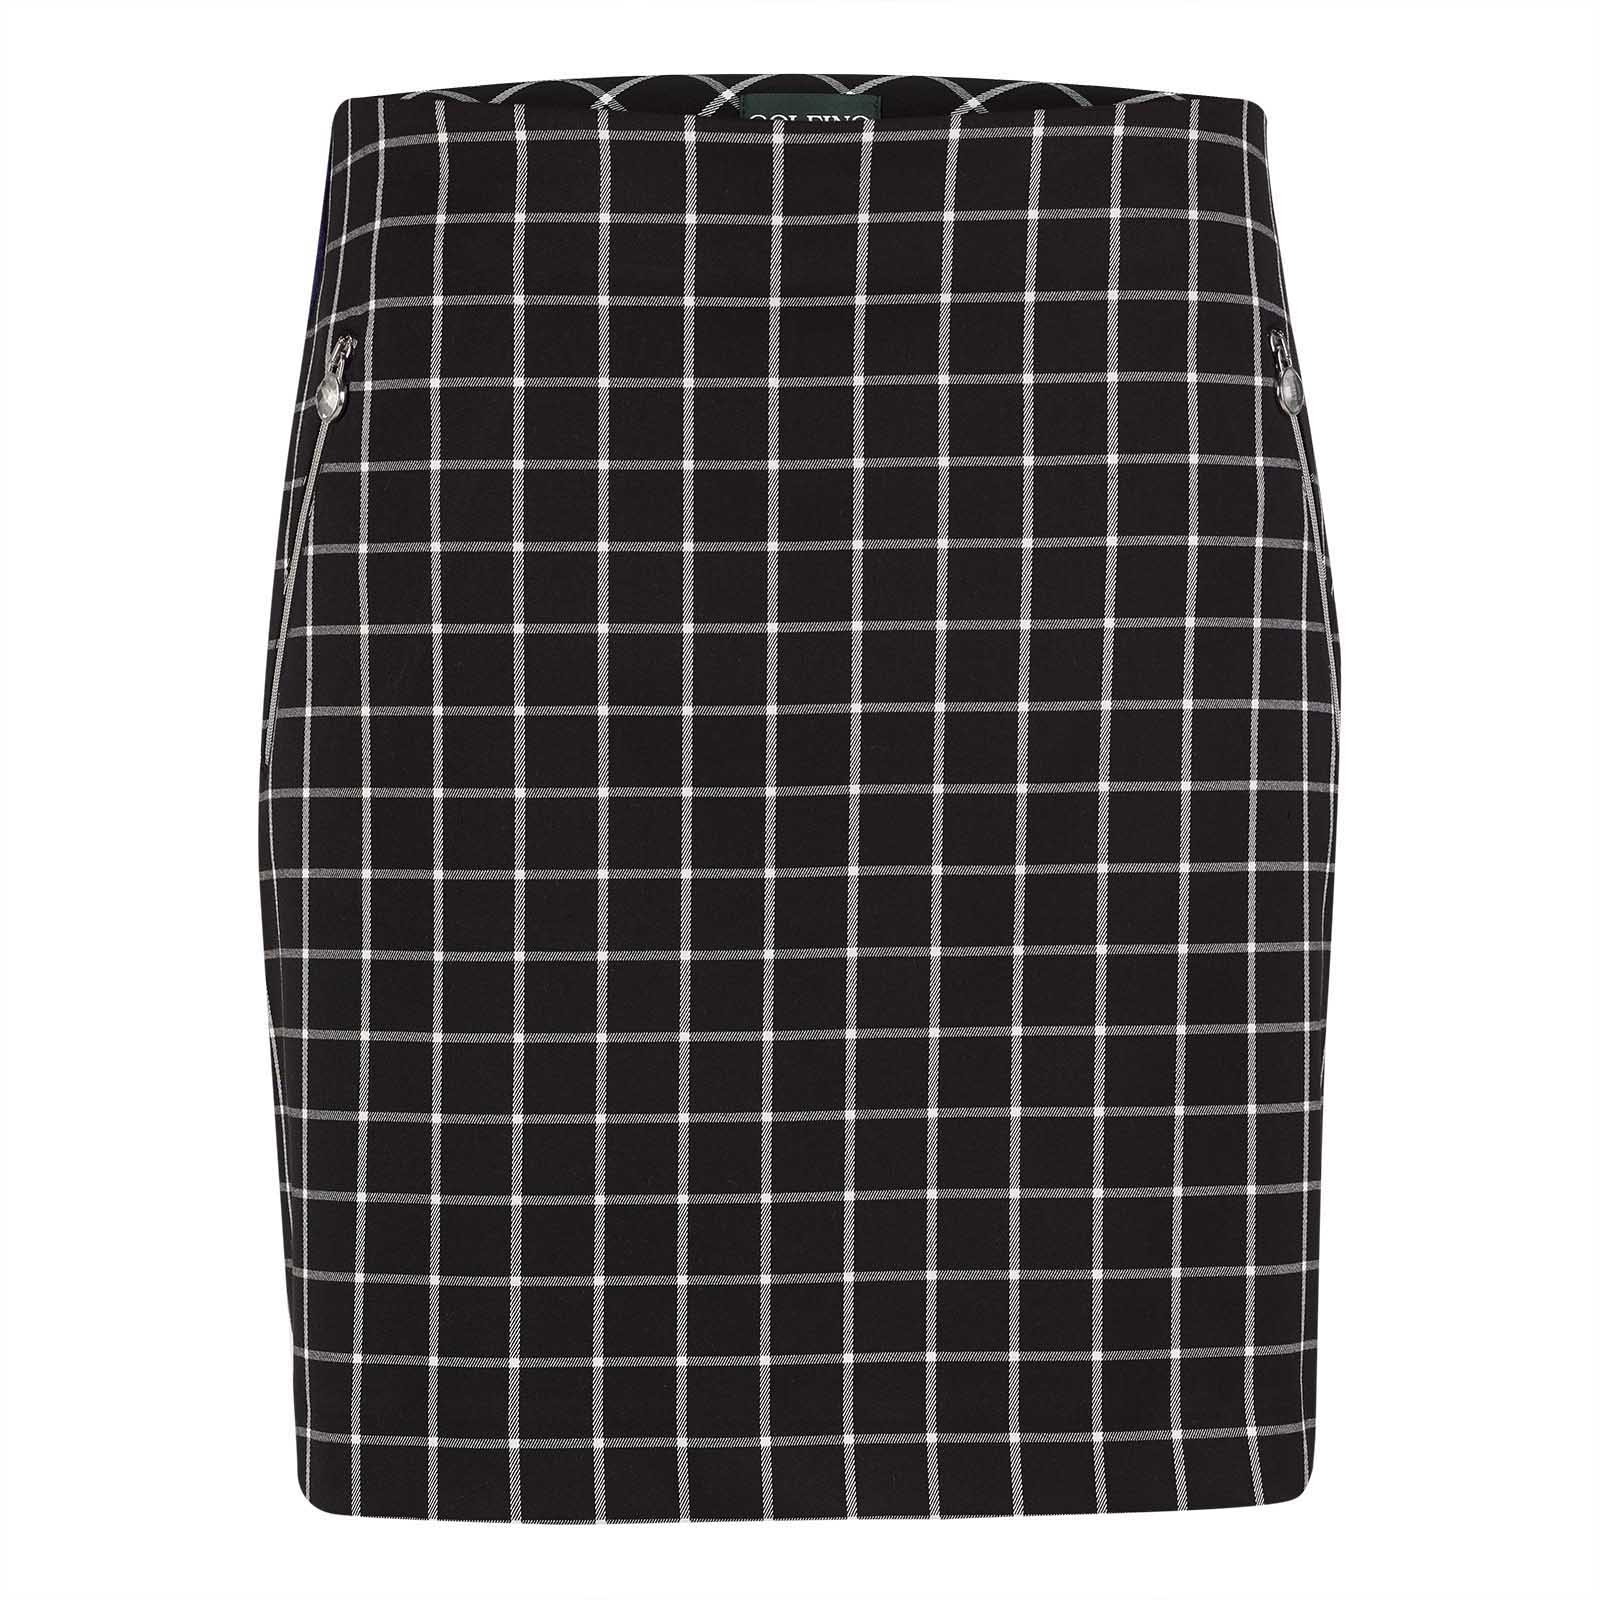 Ladies' medium checked golf skirt made from Quick Dry functional material